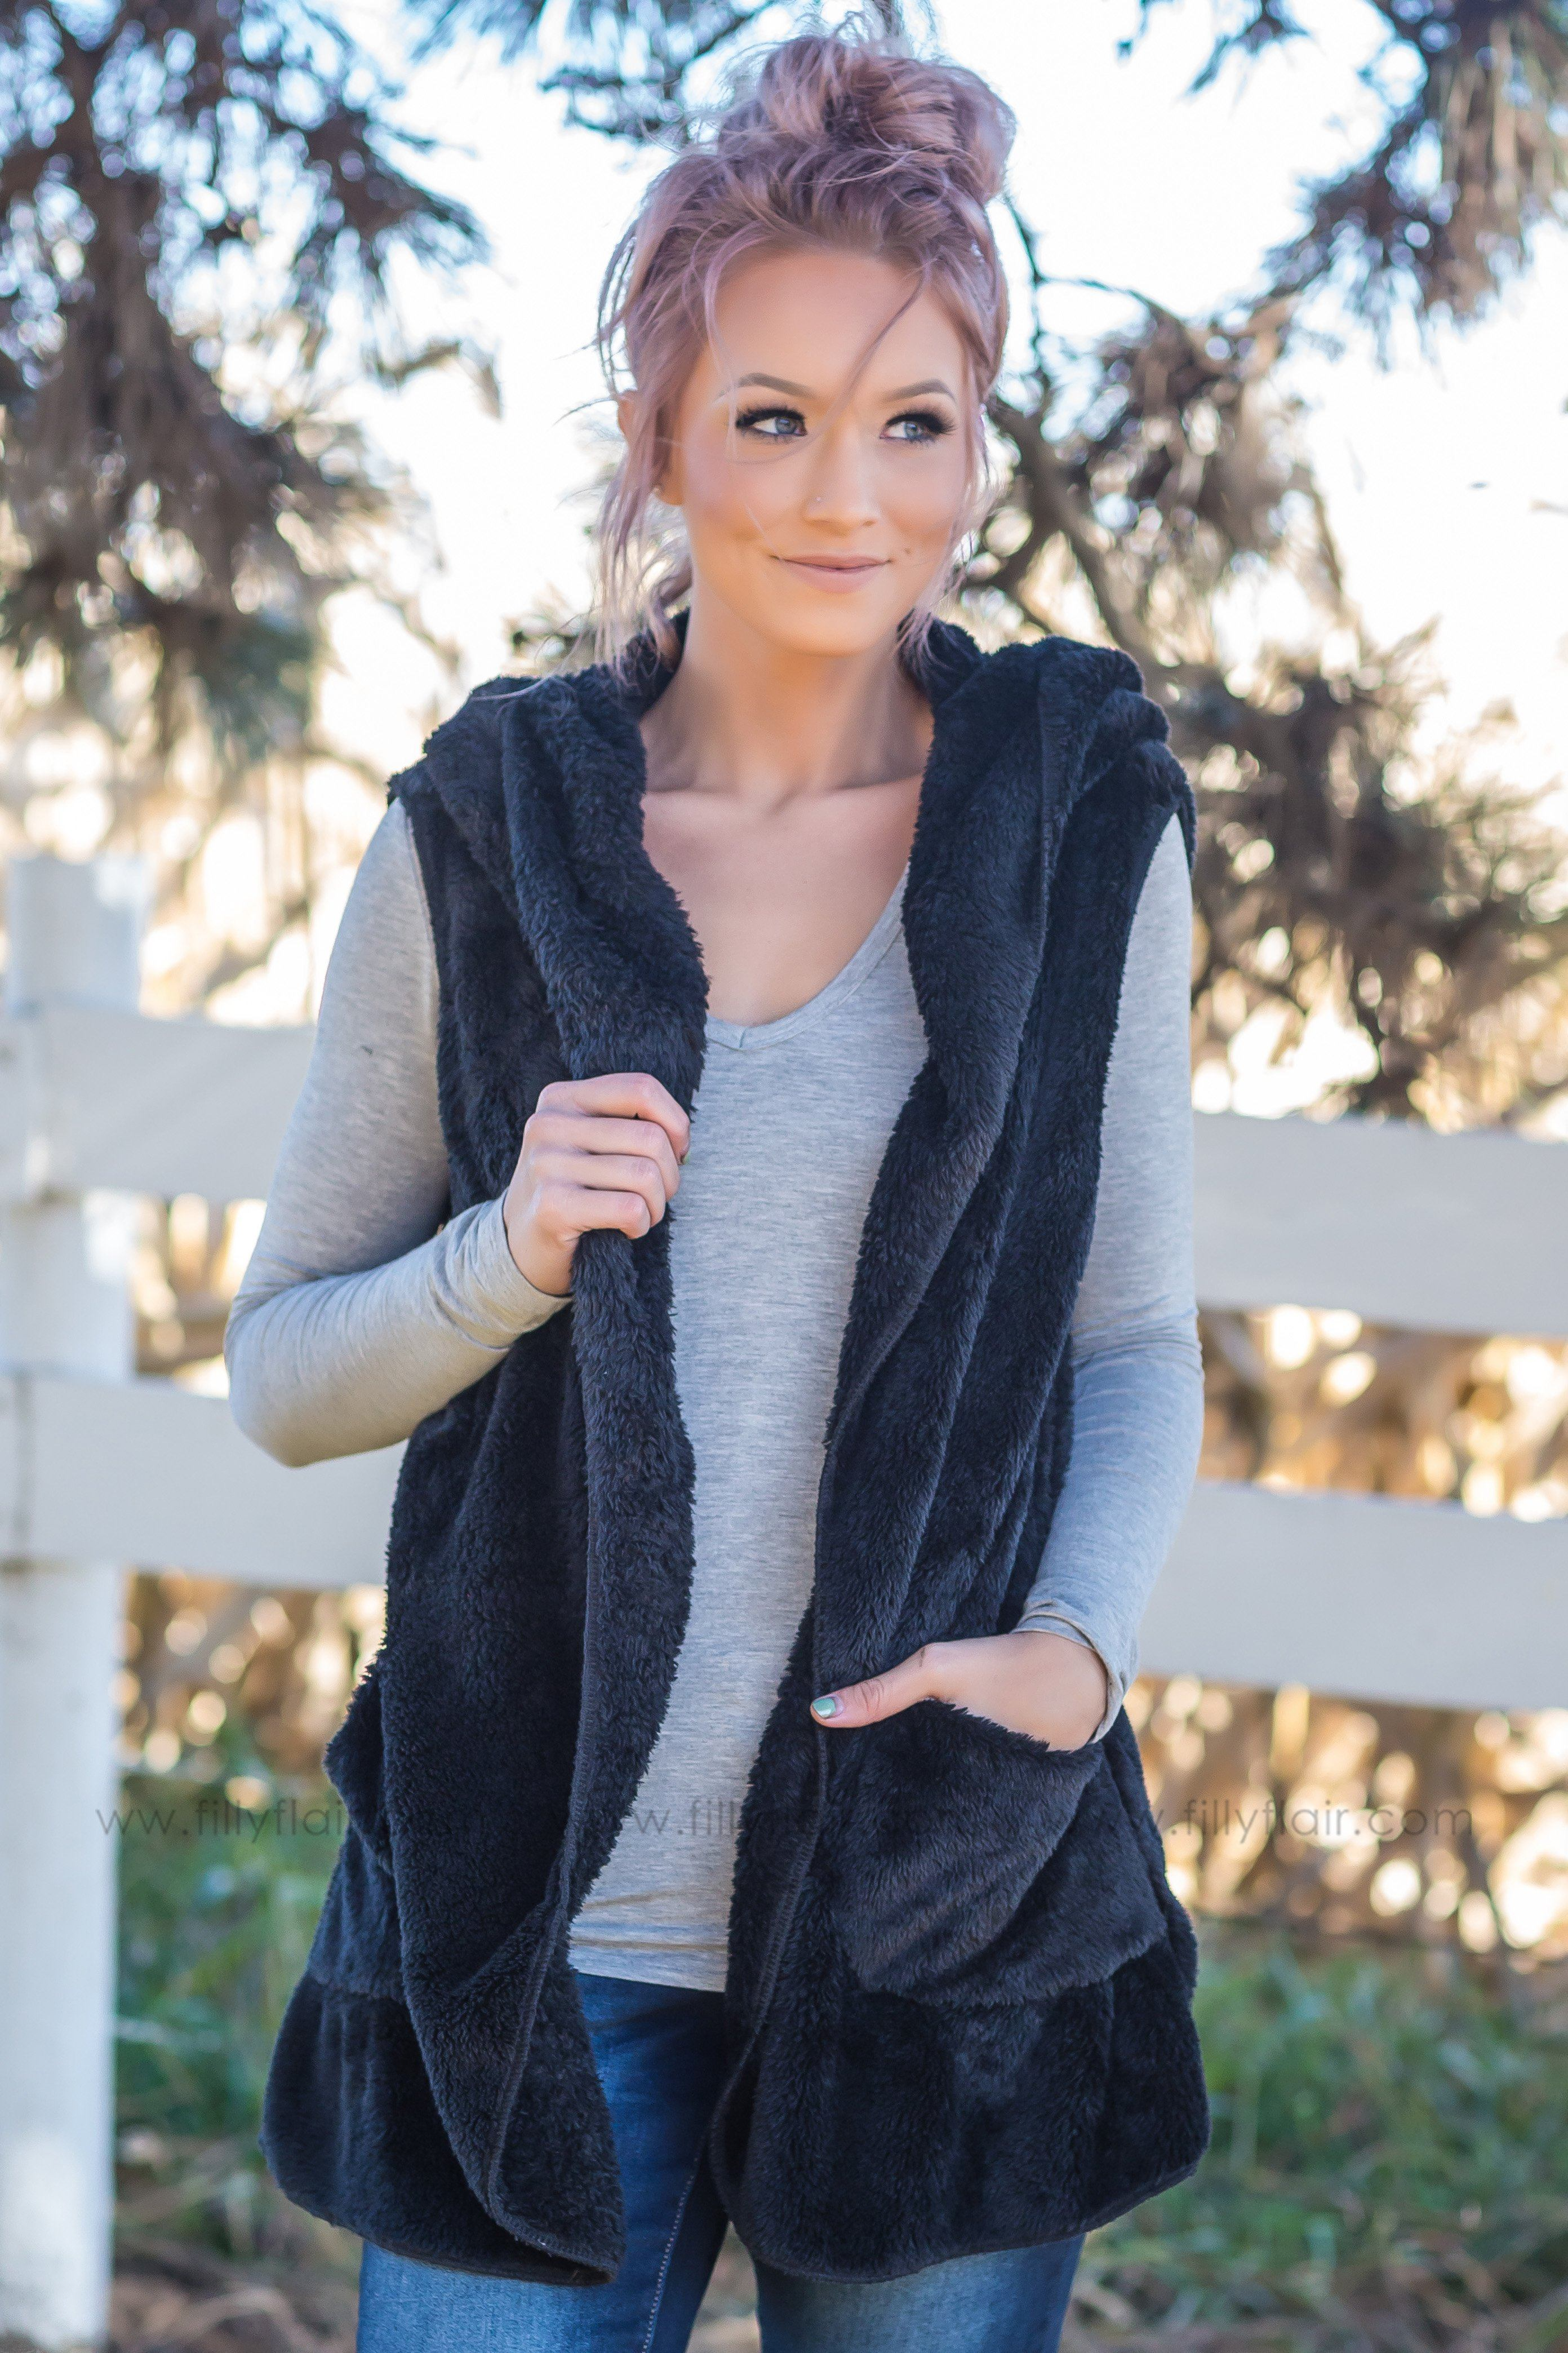 Outdoor Adventure Hooded Faux Fur Vest in Black - Filly Flair